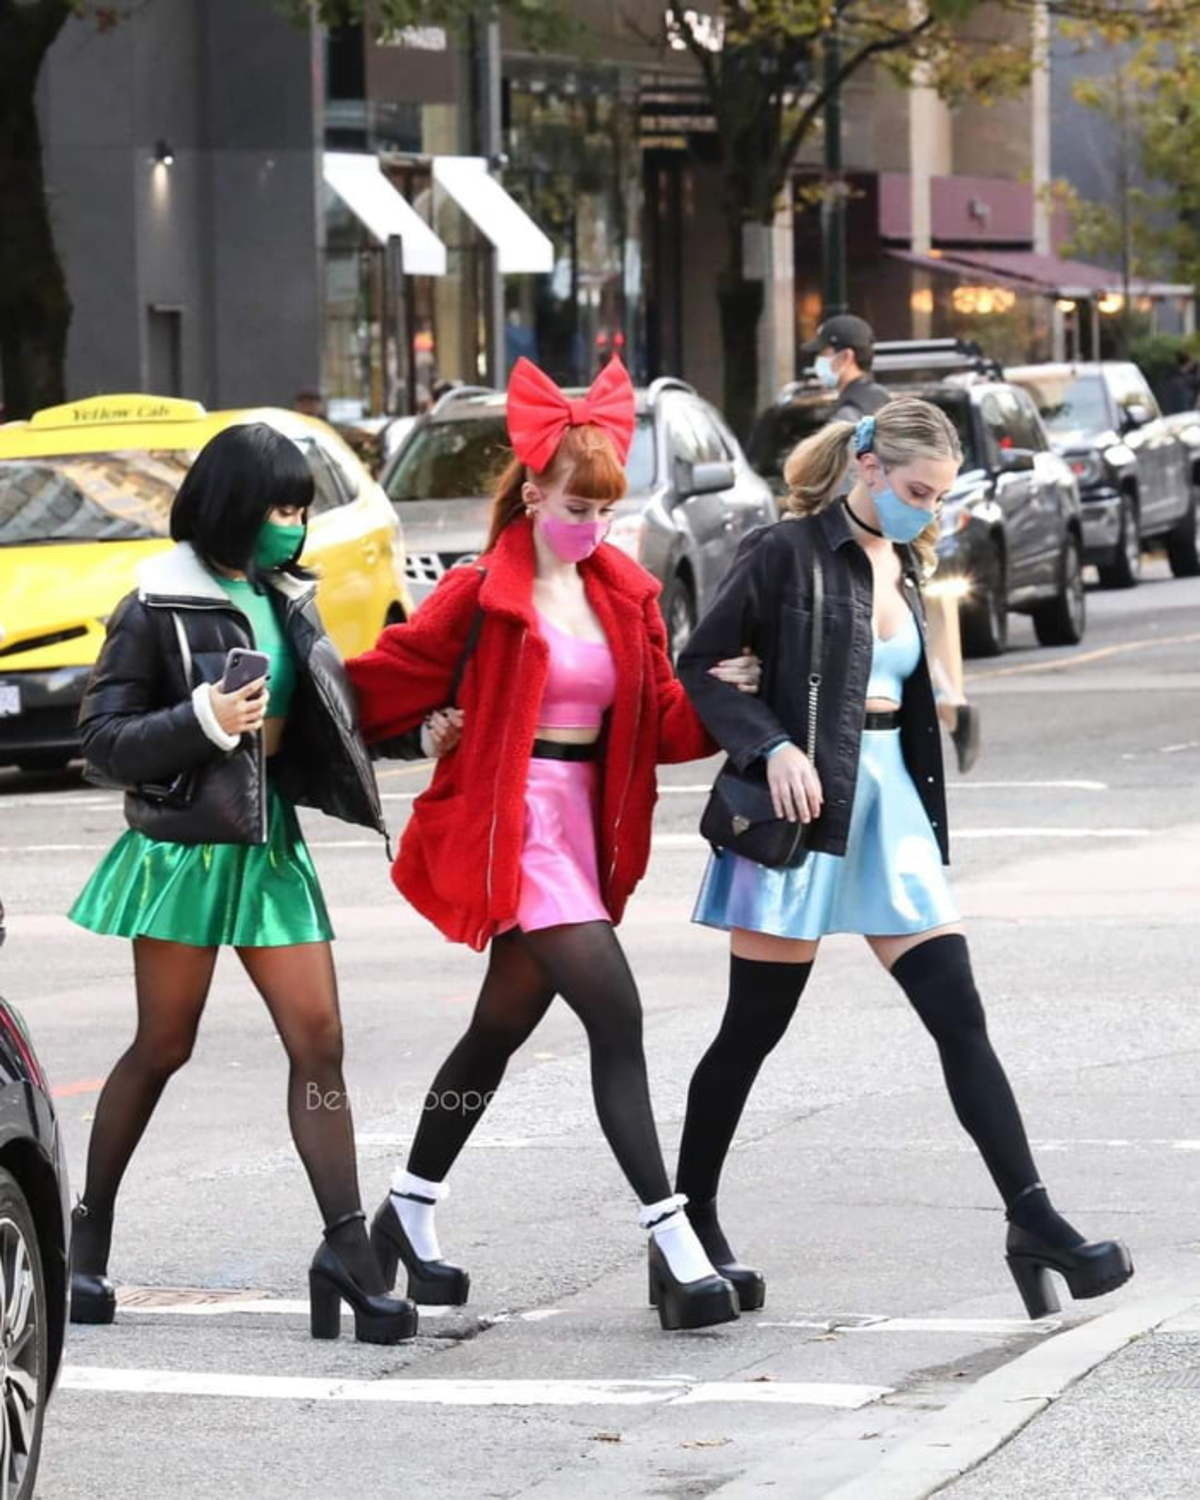 PPG. .. Imagine them saying this